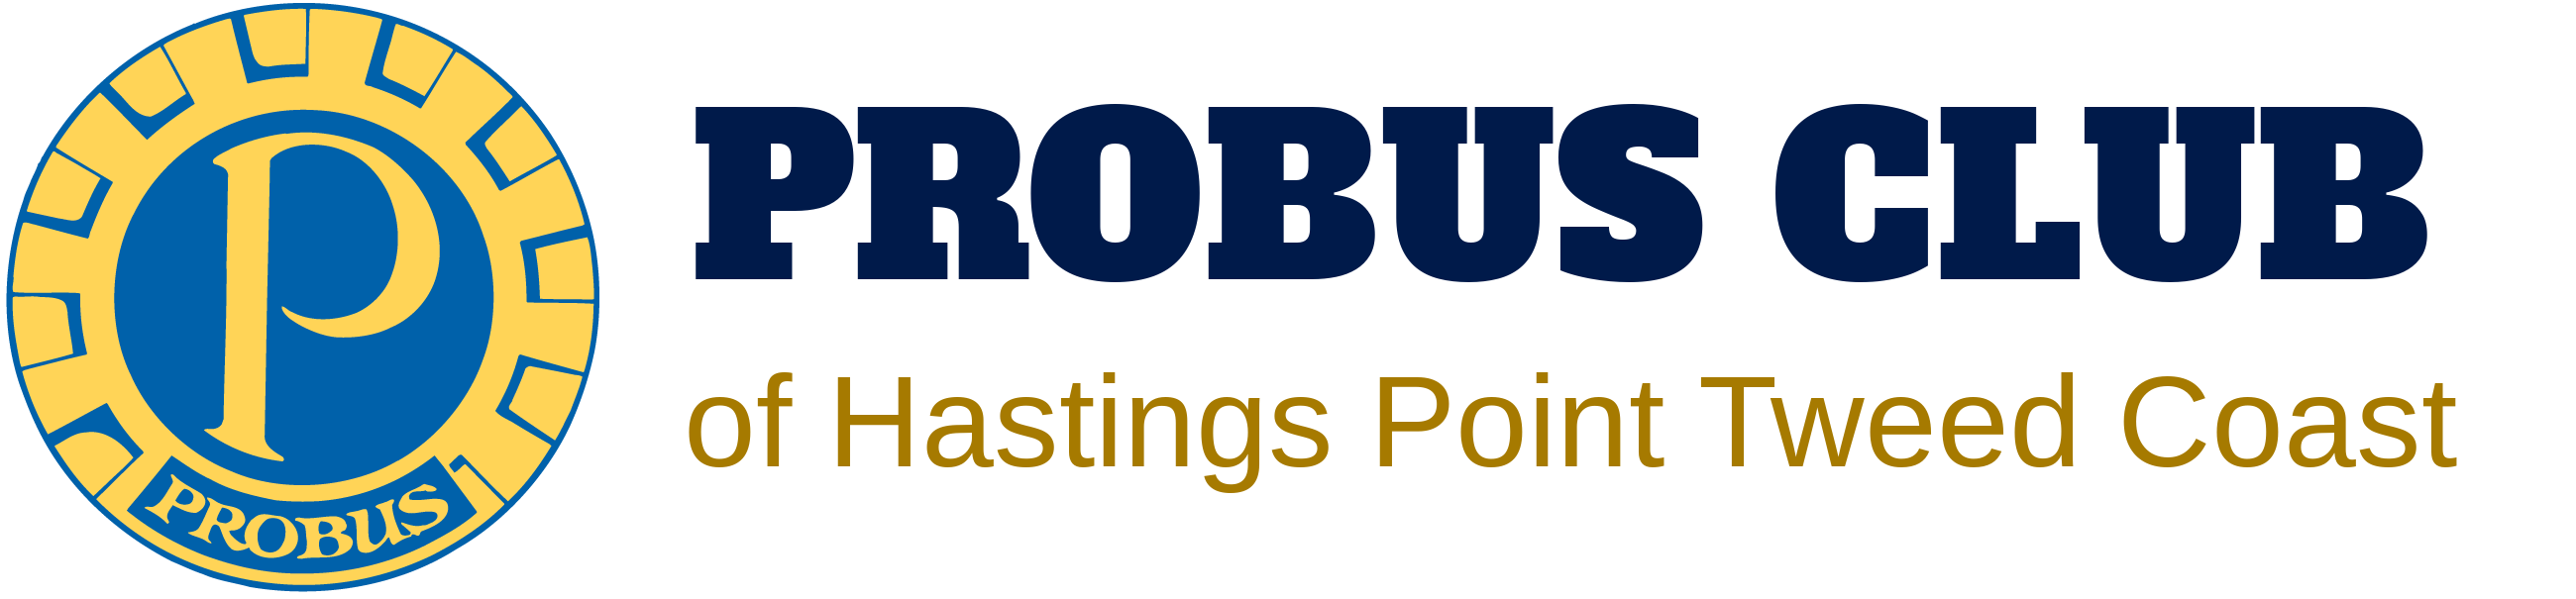 Probus Club of Hastings Point Tweed Coast Logo